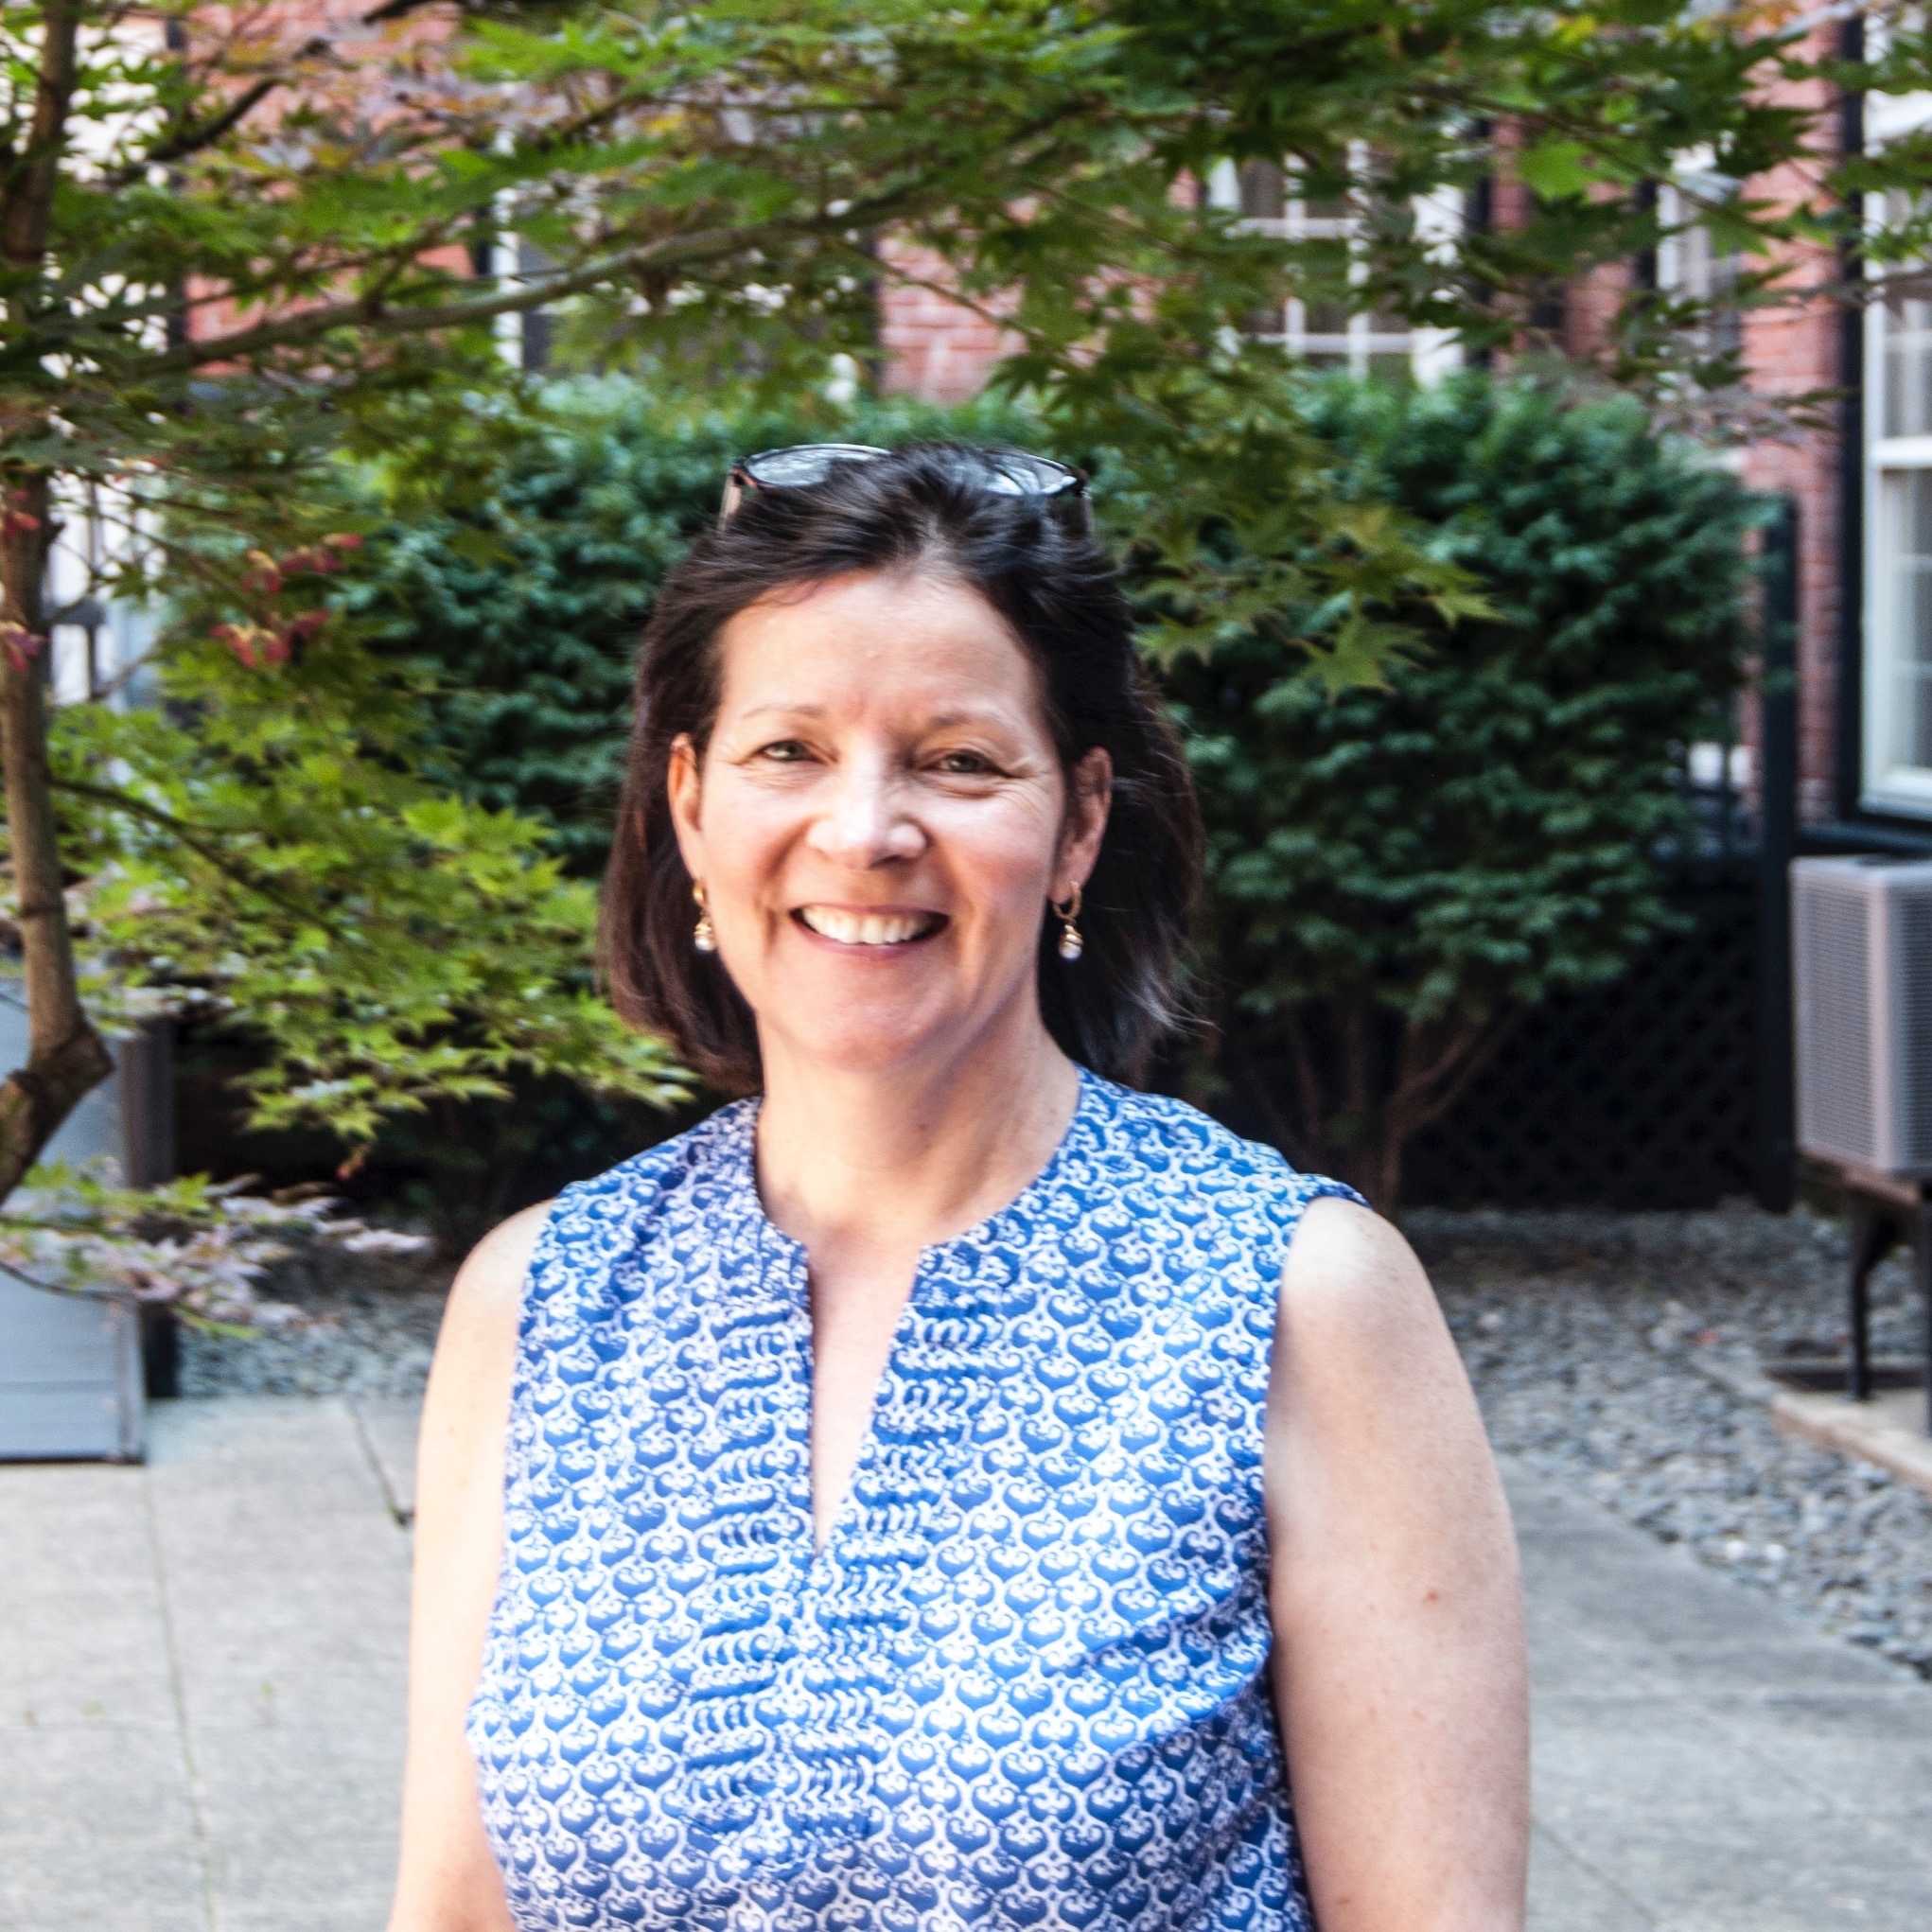 Christine Himler, R.L.A - Landscape Design Project ManagerChristine Himler has over twenty-five years of experience in landscape design and project management. Christine is a Registered Landscape Architect with a Bachelors Degree in Landscape Architecture from Penn State University. Christine has provided landscape design services in an extensive variety of settings over her years of experience. Christine has recently completed master planning and construction plans for large scale public park projects in Pittston City at Sullivan Park and the Library Amphitheater and at the Factoryville / Clinton Township Joint Municipal Park. Christine also serves private clients by providing services such as the preparation of site feasibility studies, the development of subdivision and land development plans, and landscape design for commercial and residential projects. Christine is responsible for assisting in the expansion of the firm's presence and client base in the Central Pennsylvania and Lehigh Valley Regions.